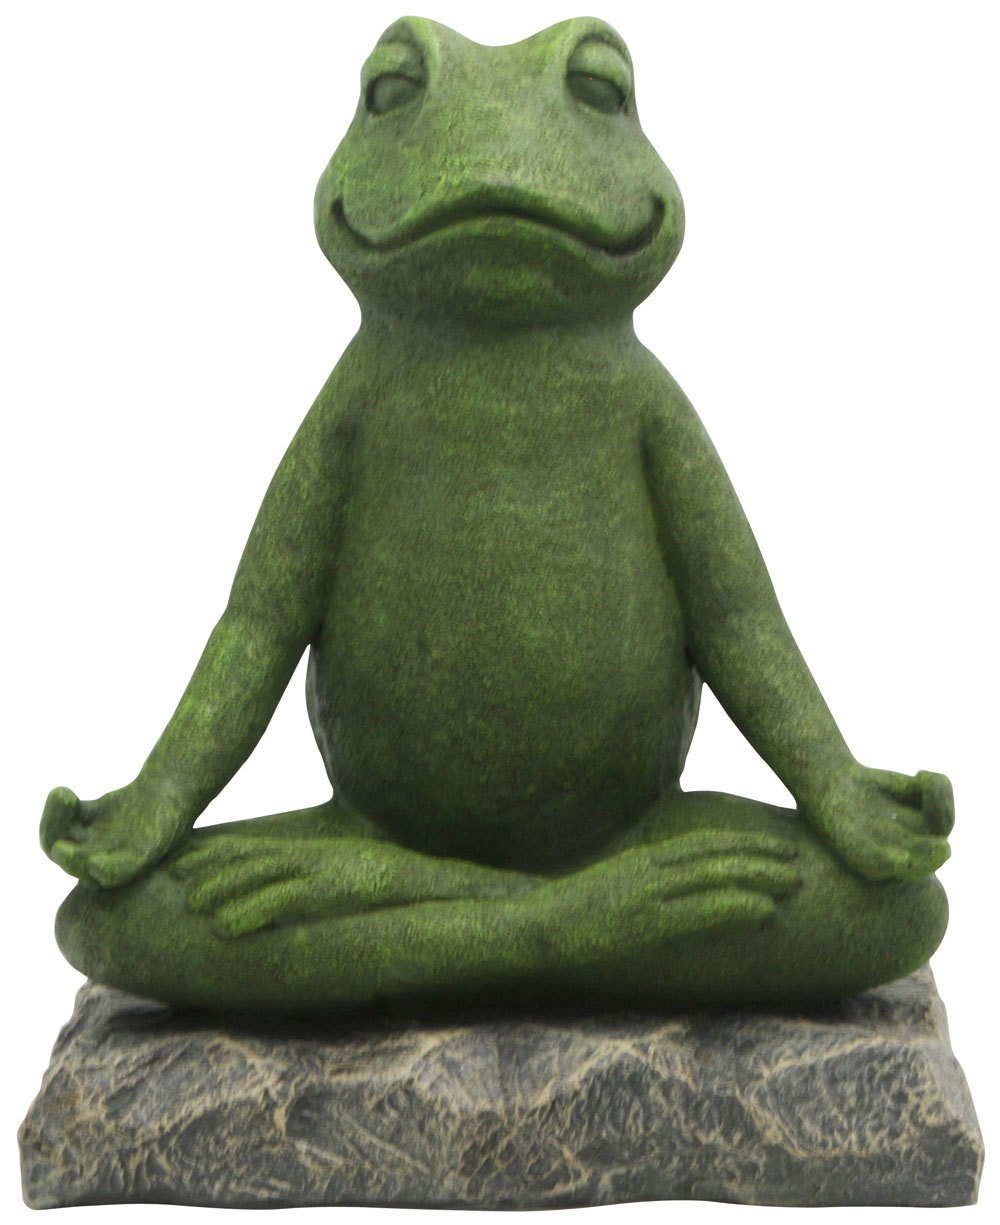 Buddha Groove Meditating Garden Yoga Frog Statue in Artistic Textured Finish Made of Cast Stone for Indoor Outdoor Use Sturdy Construction, Measures 11 Inches Tall